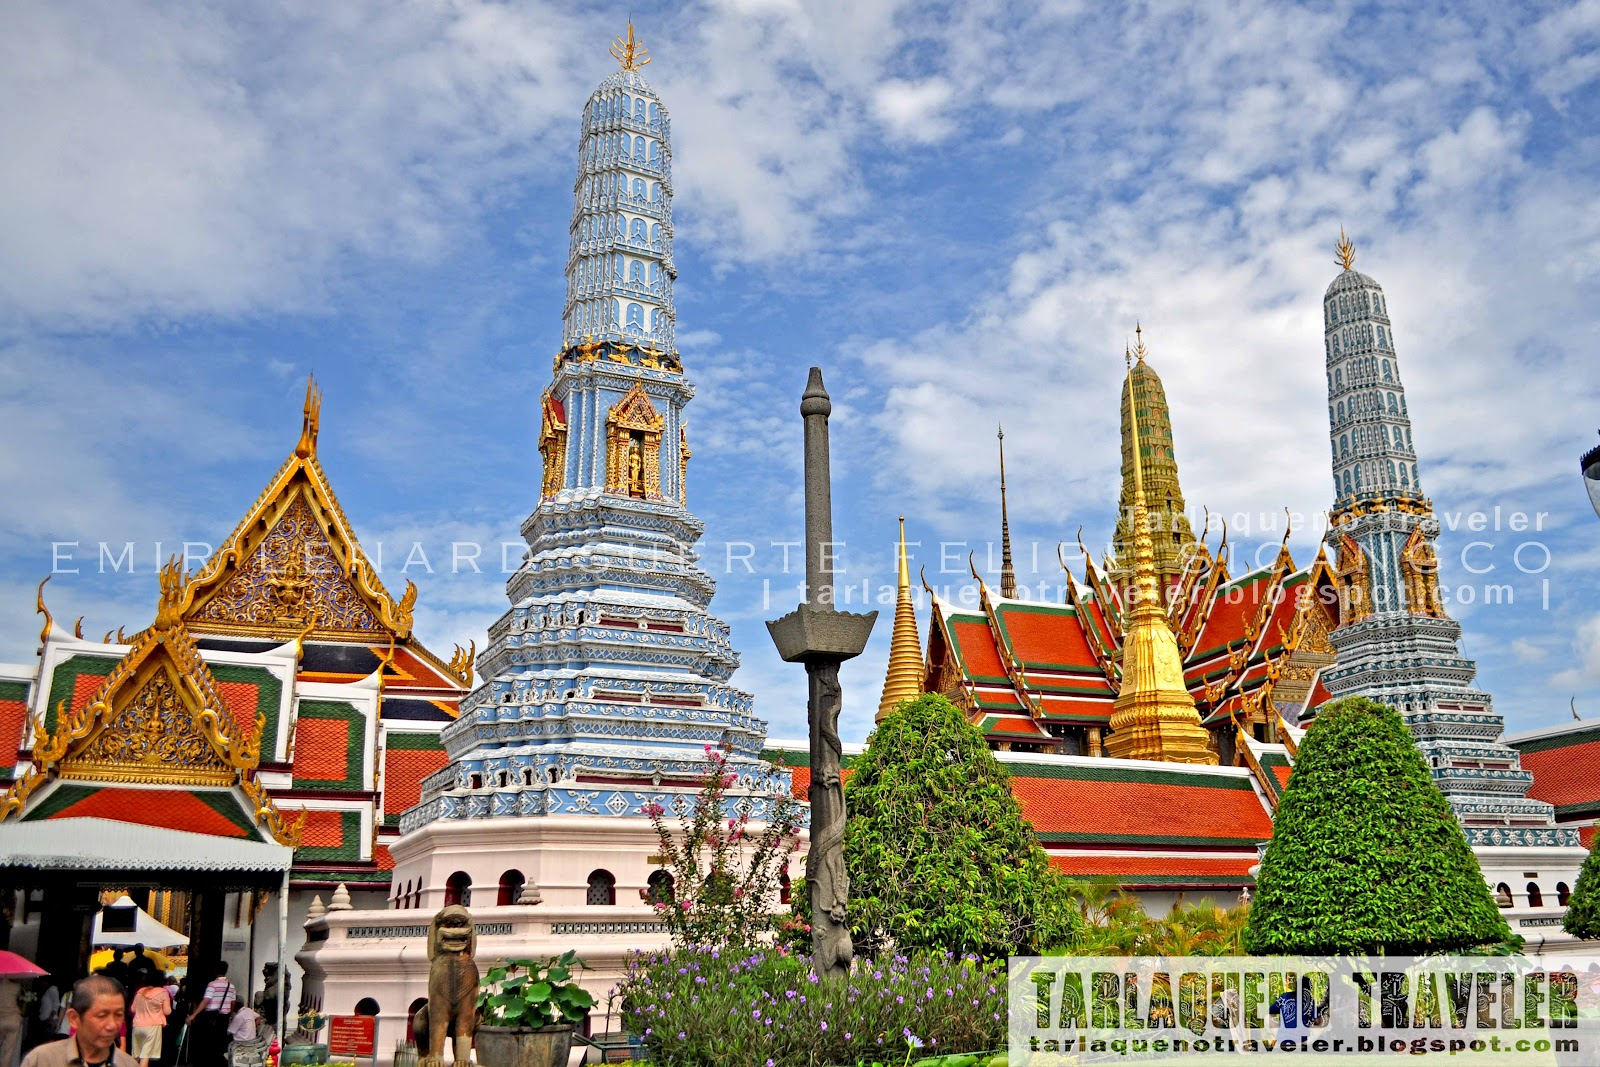 Tarlaqueno Traveler Bangkok Grand Palace